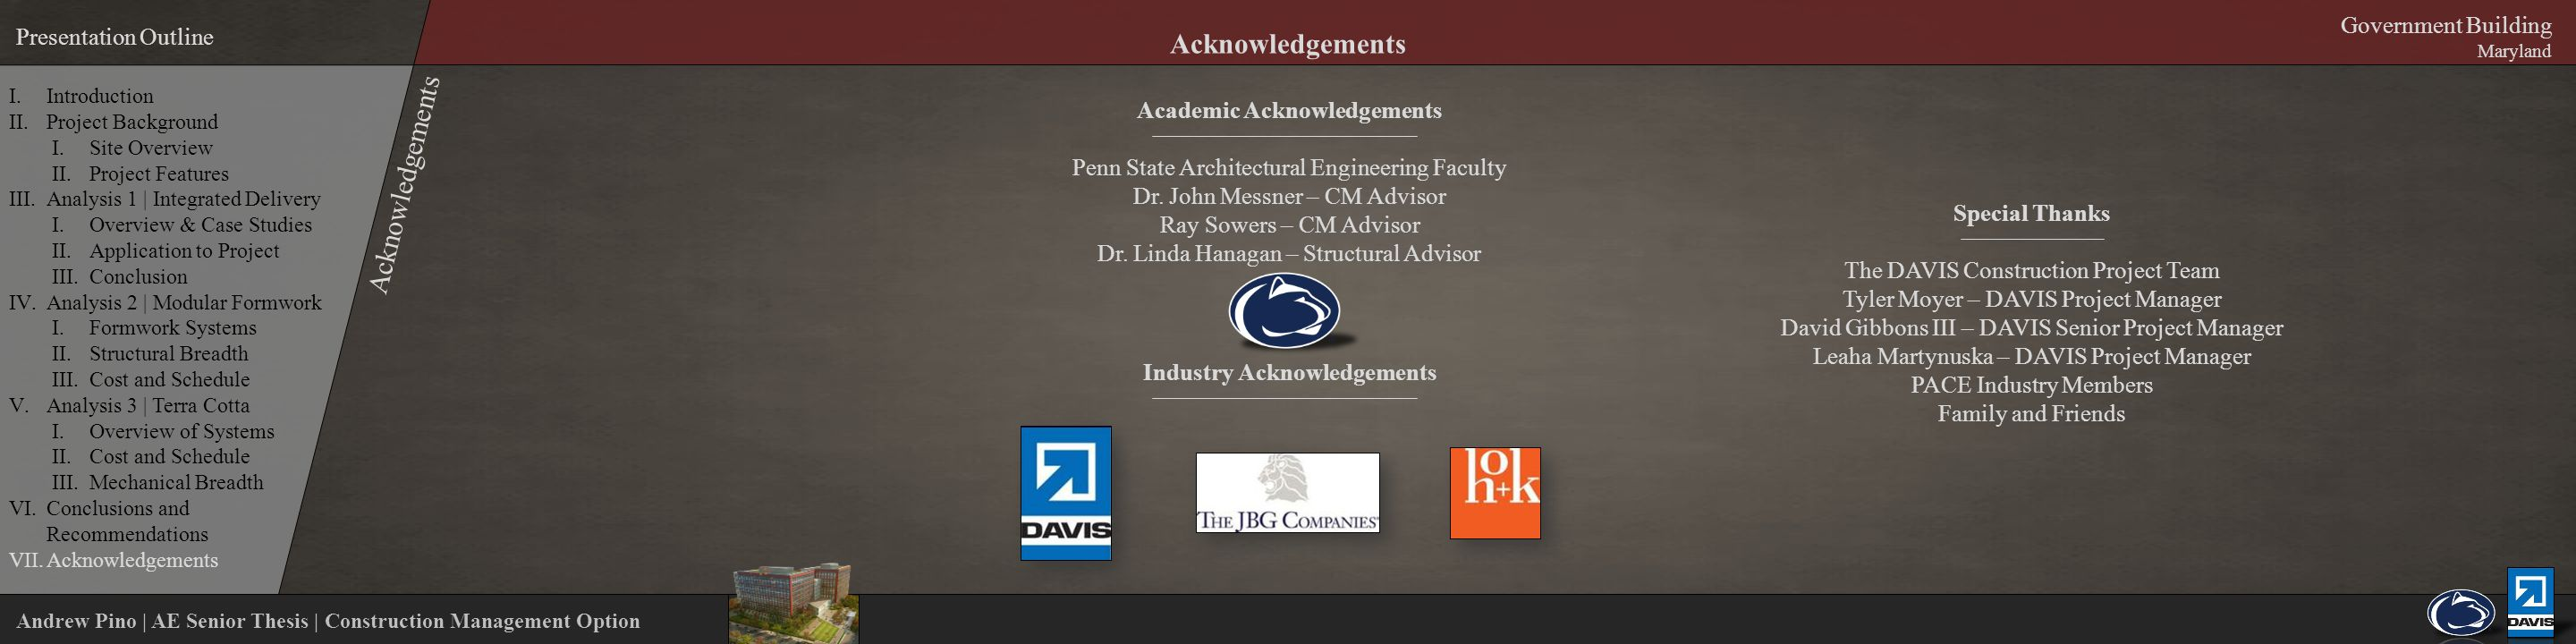 Andrew Pino | AE Senior Thesis | Construction Management Option Presentation Outline Government Building Maryland Acknowledgements Academic Acknowledgements Penn State Architectural Engineering Faculty Dr.